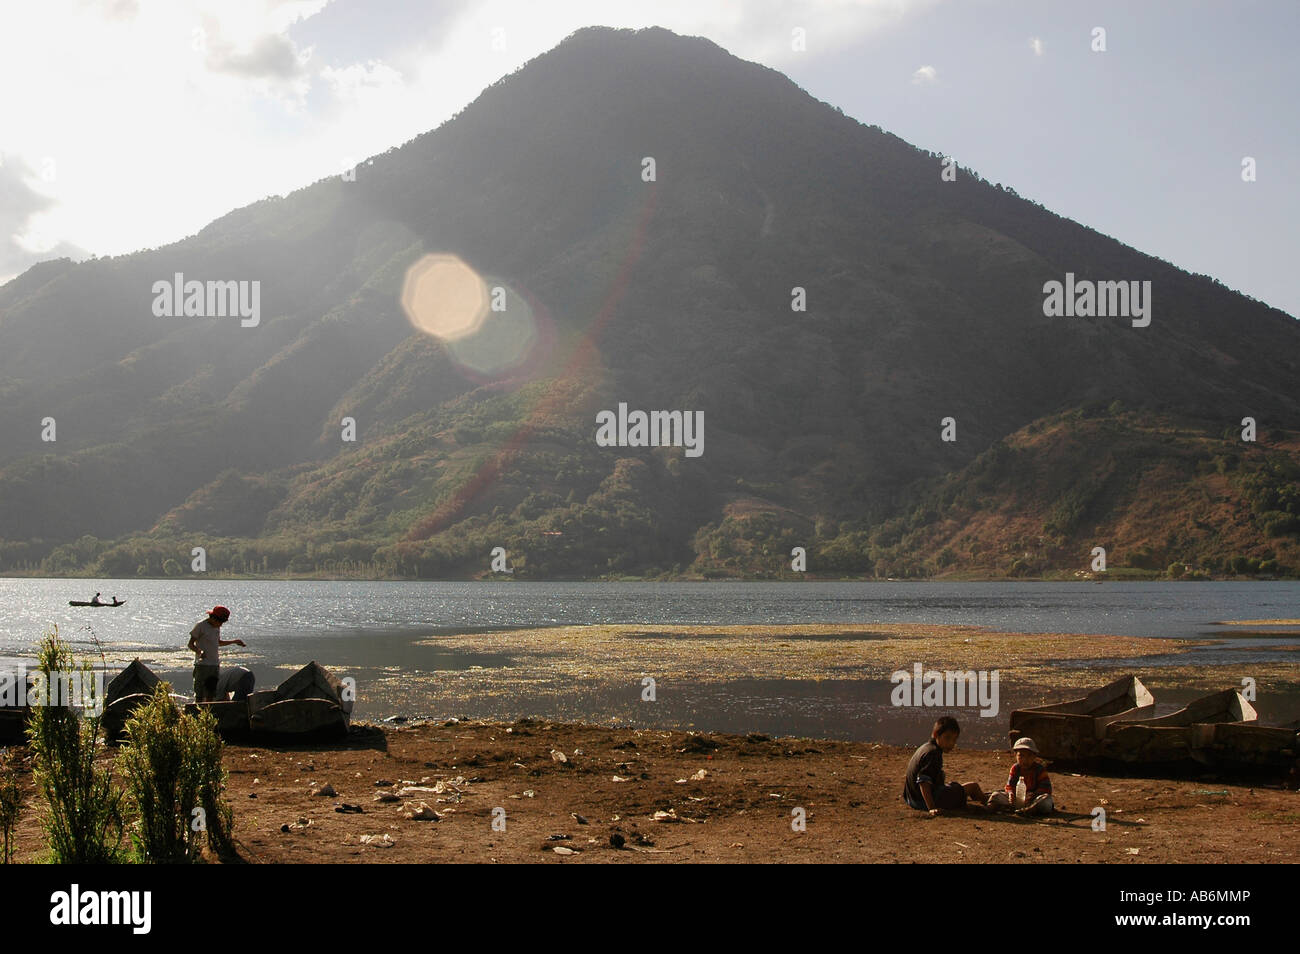 Volcan San Pedro viewed from the shores of Santiago Atitlan, Lake Atitlan, Guatemala. - Stock Image